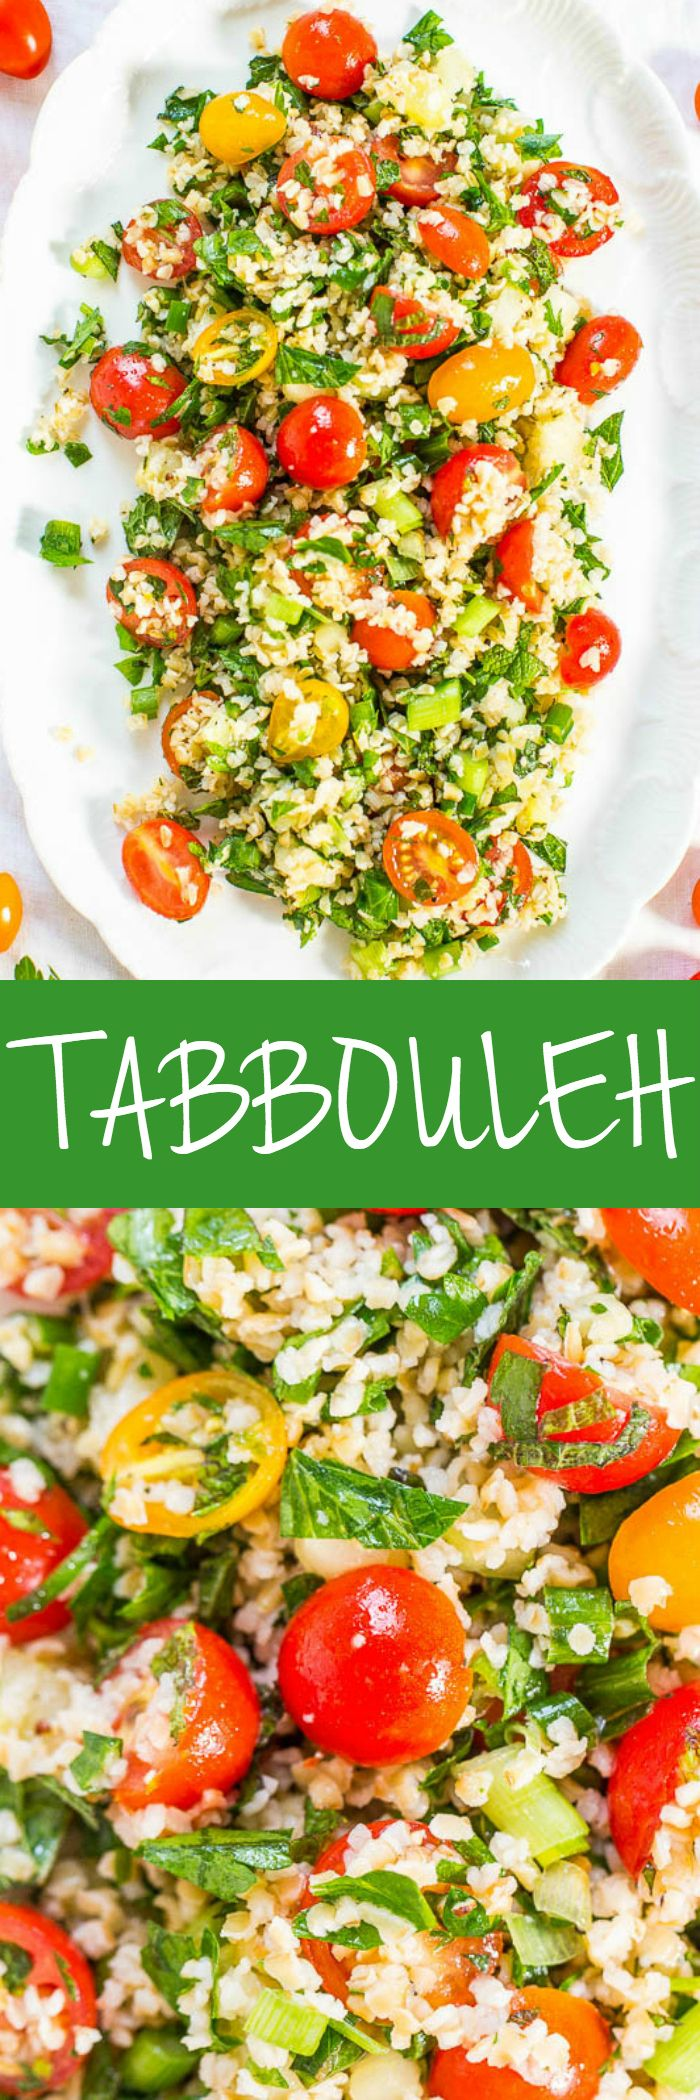 Tabbouleh - Never had it? Think couscous or quinoa mixed with vegetables, herbs, lemon and olive oil! Easy, no cooking required, healthy, and packed with so much flavor!! (Great for outdoor events because there's no mayo!) #FourthofJuly #LaborDay